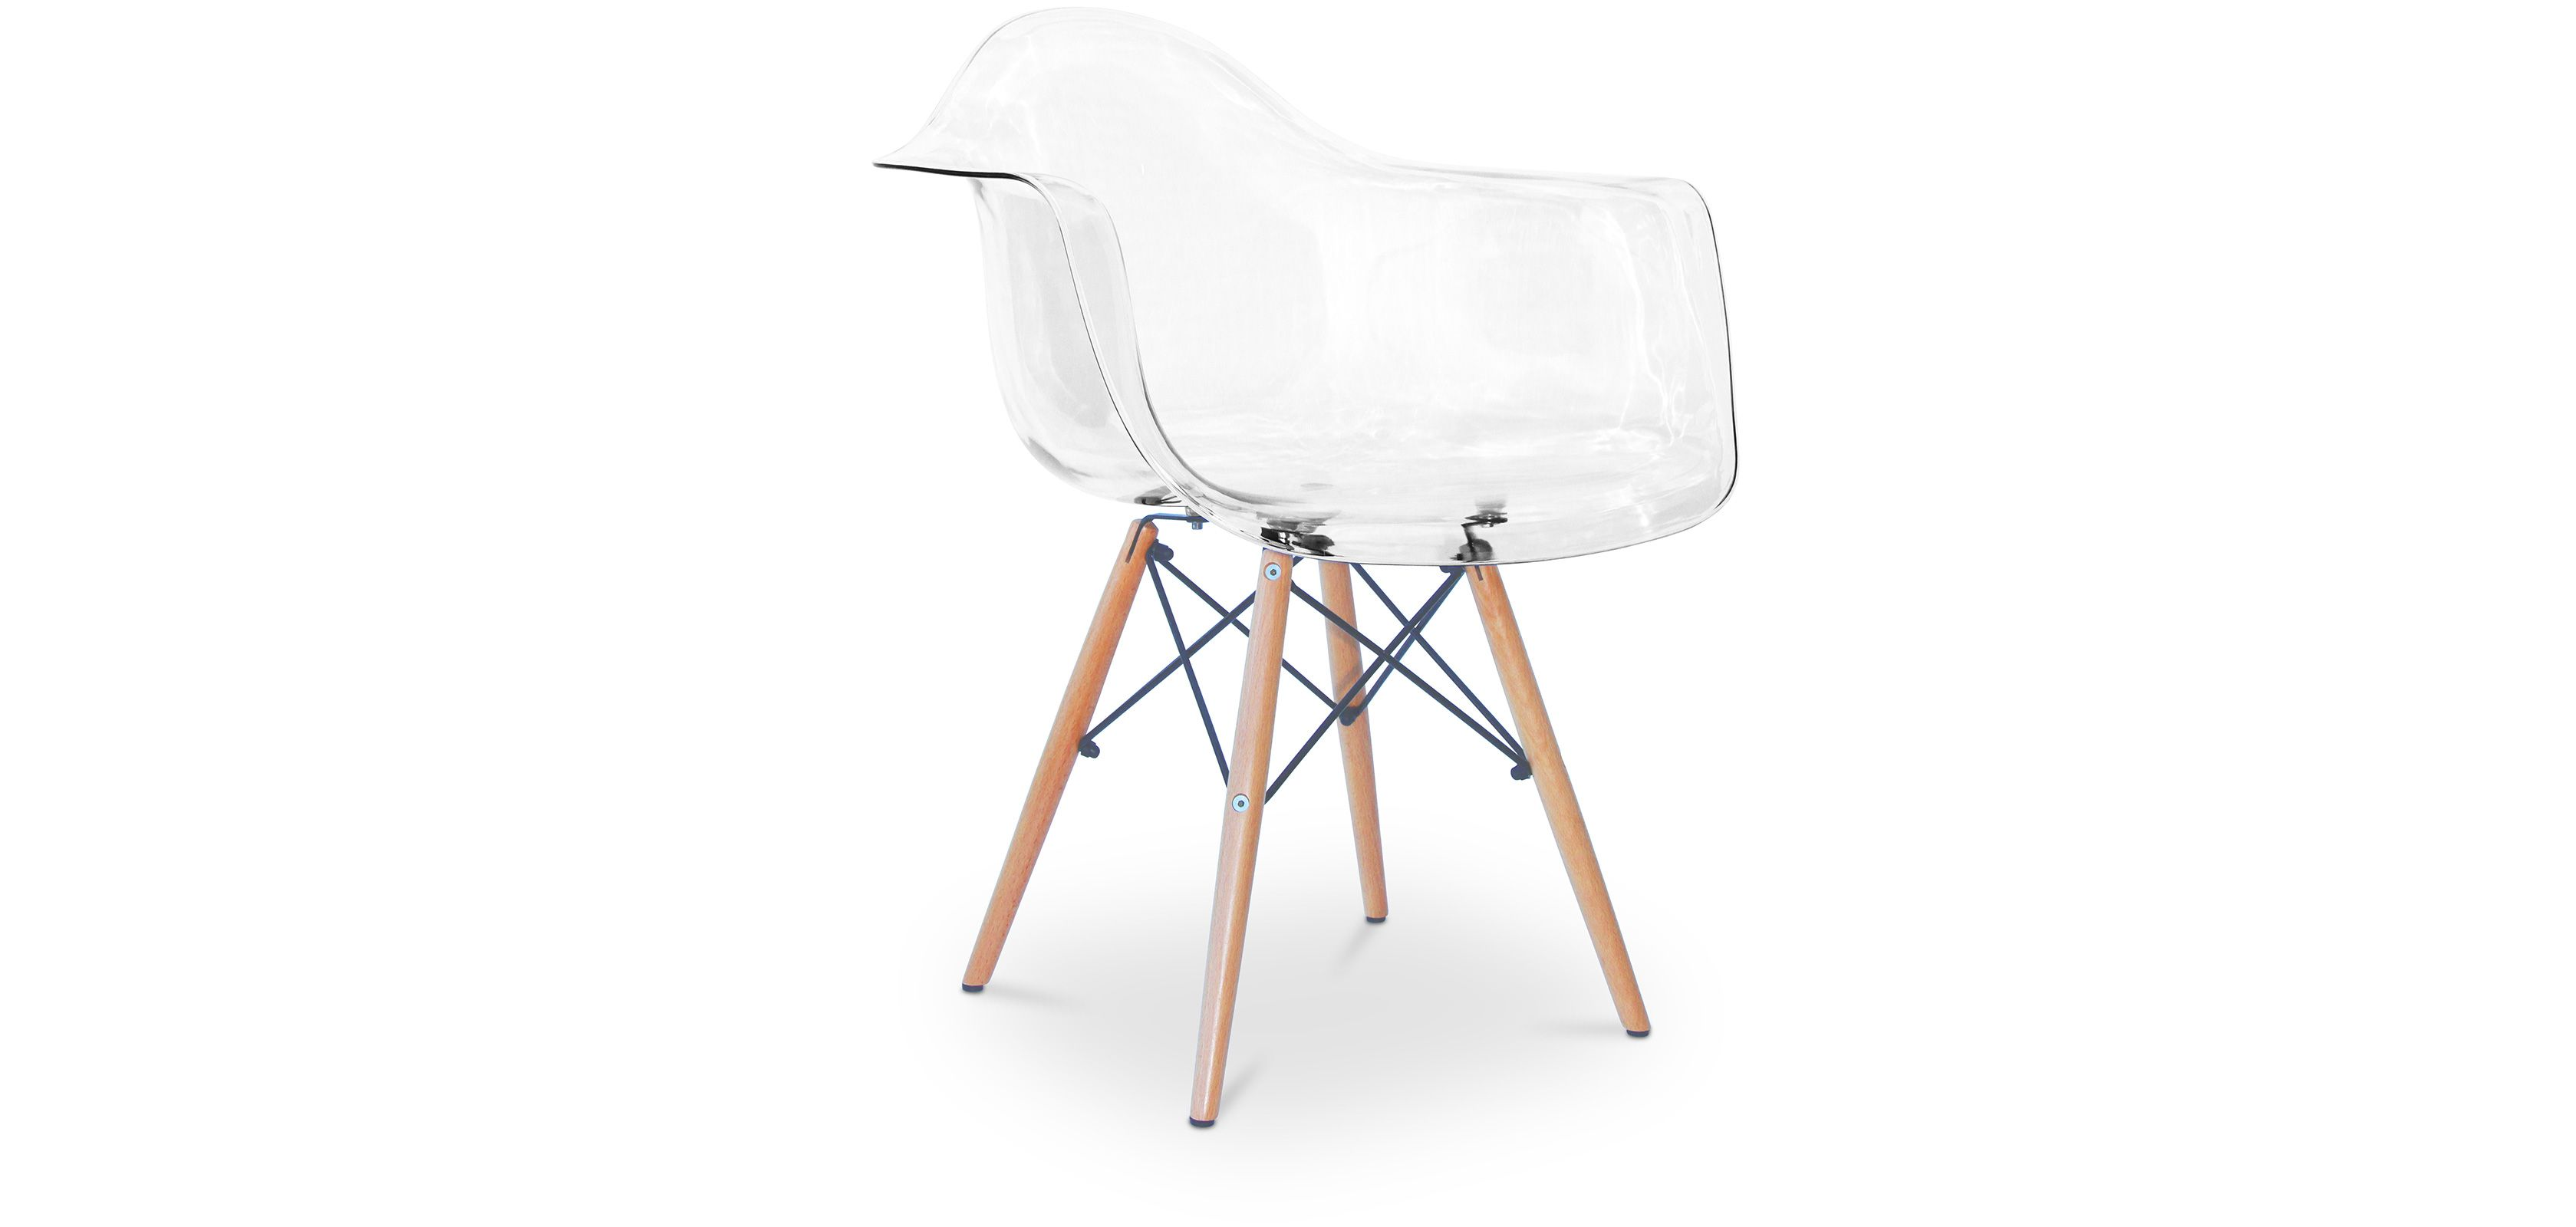 chaise daw charles eames style - polycarbonate 52? | ron - ofi ... - Chaise Daw Charles Eames